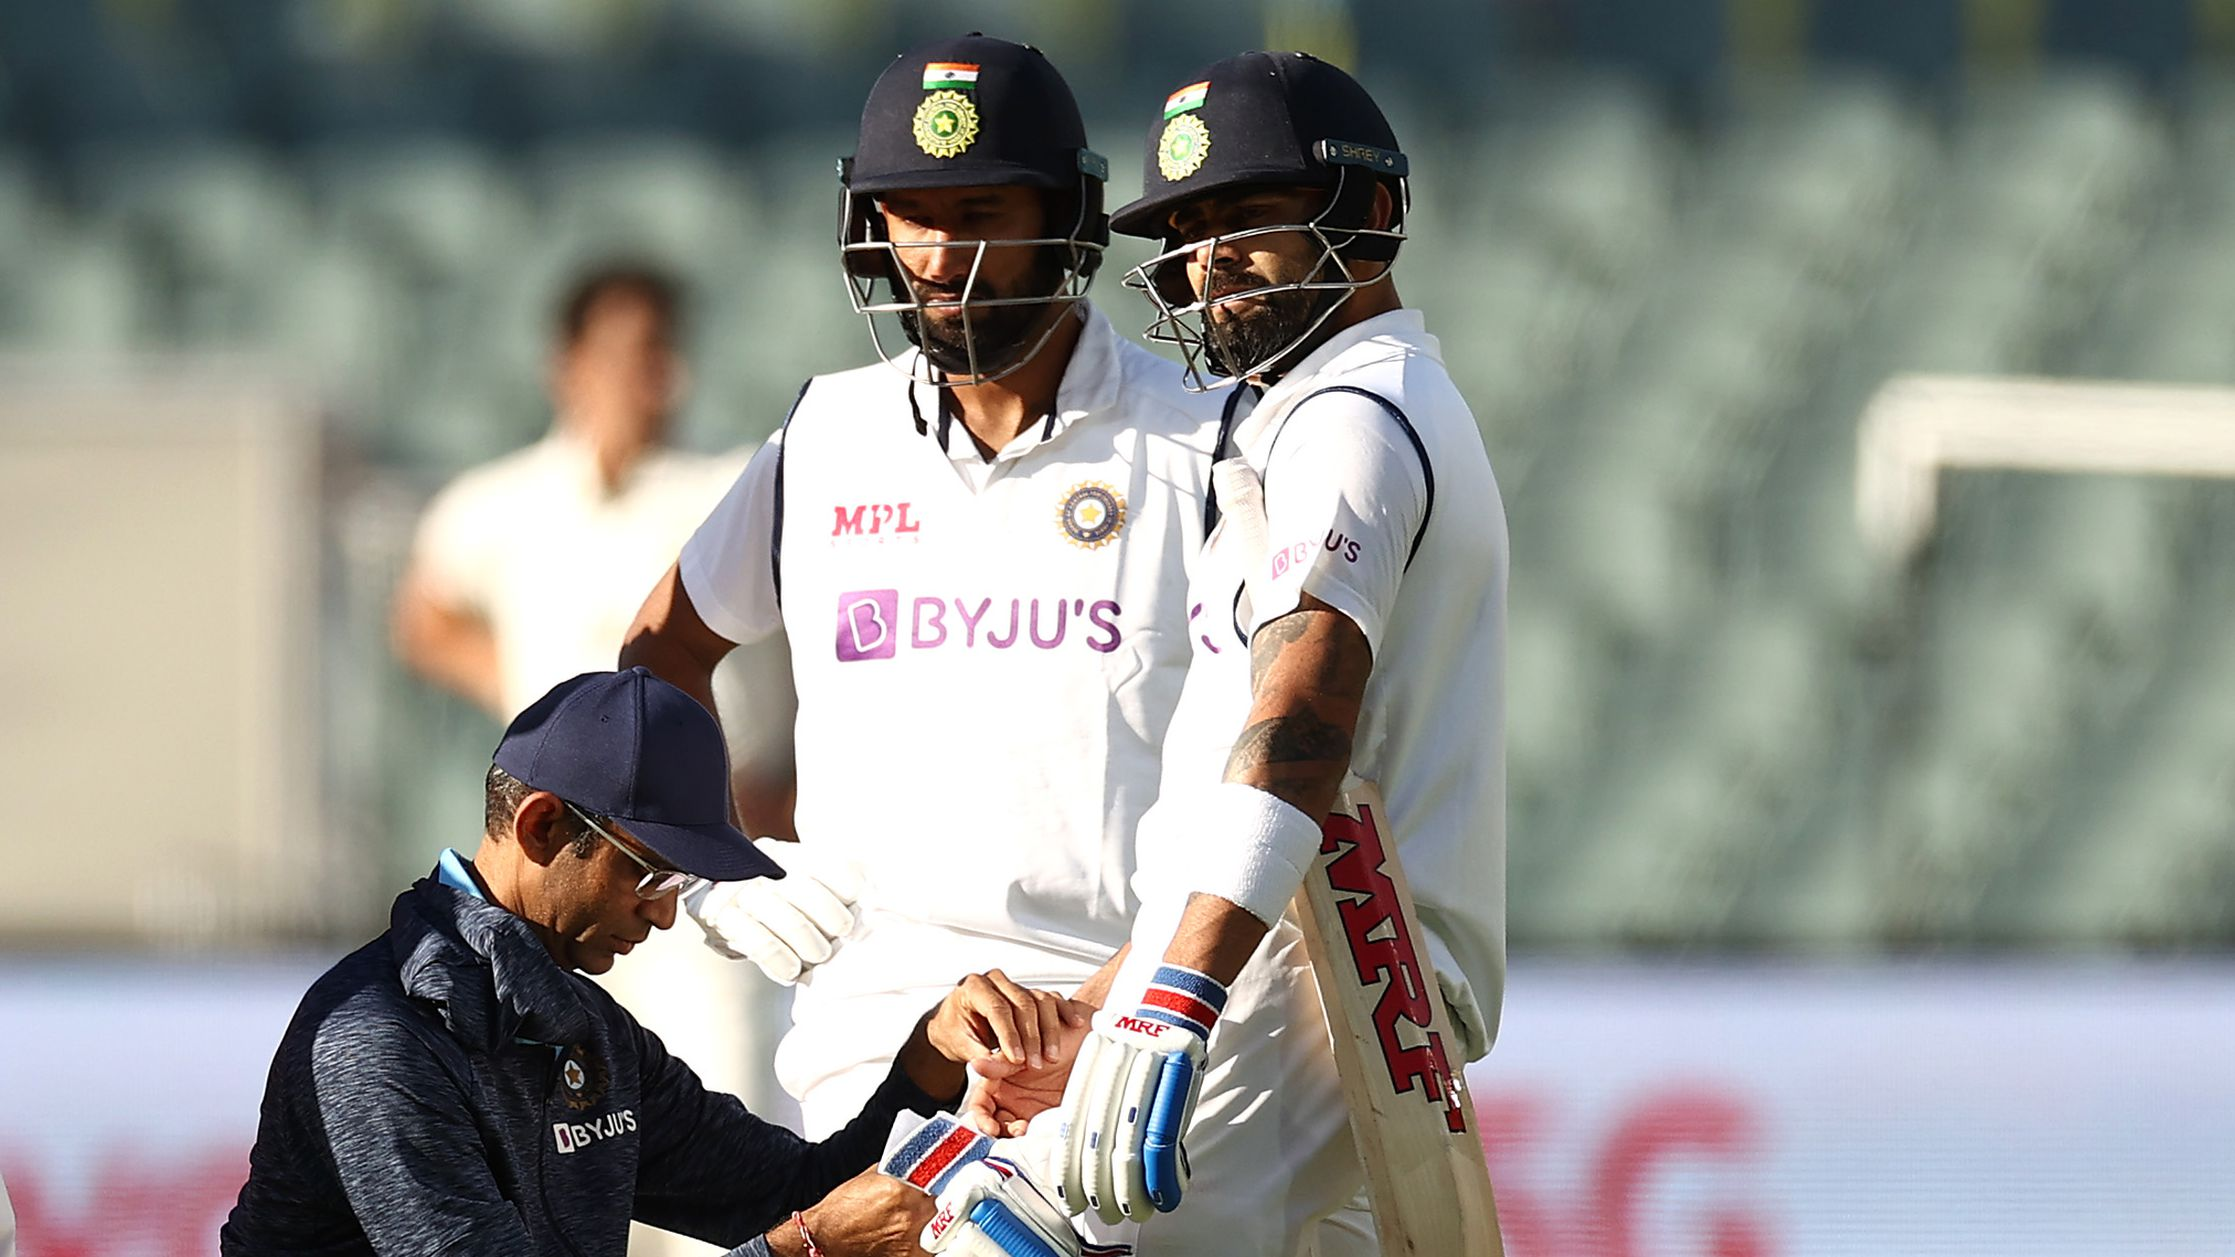 EXCLUSIVE: Ian Chappell believes Virat Kohli was frustrated by Indian team-mate's go slow